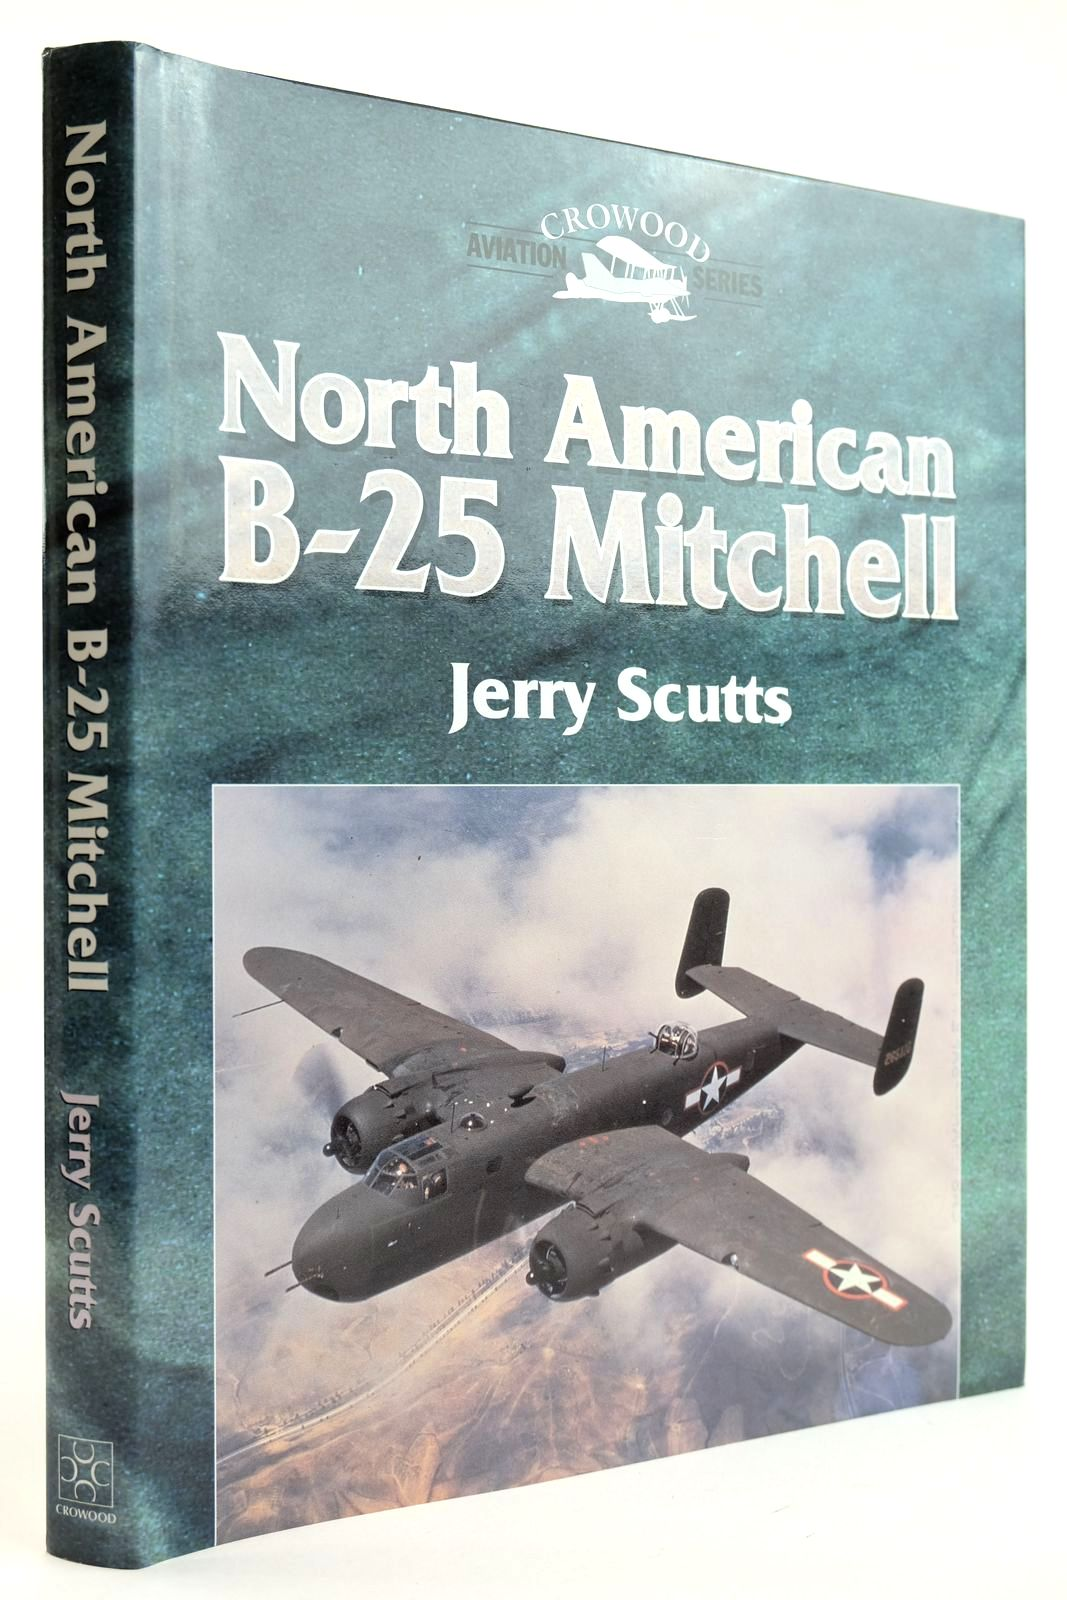 Photo of NORTH AMERICAN B-25 MITCHELL written by Scutts, Jerry published by The Crowood Press (STOCK CODE: 2132151)  for sale by Stella & Rose's Books